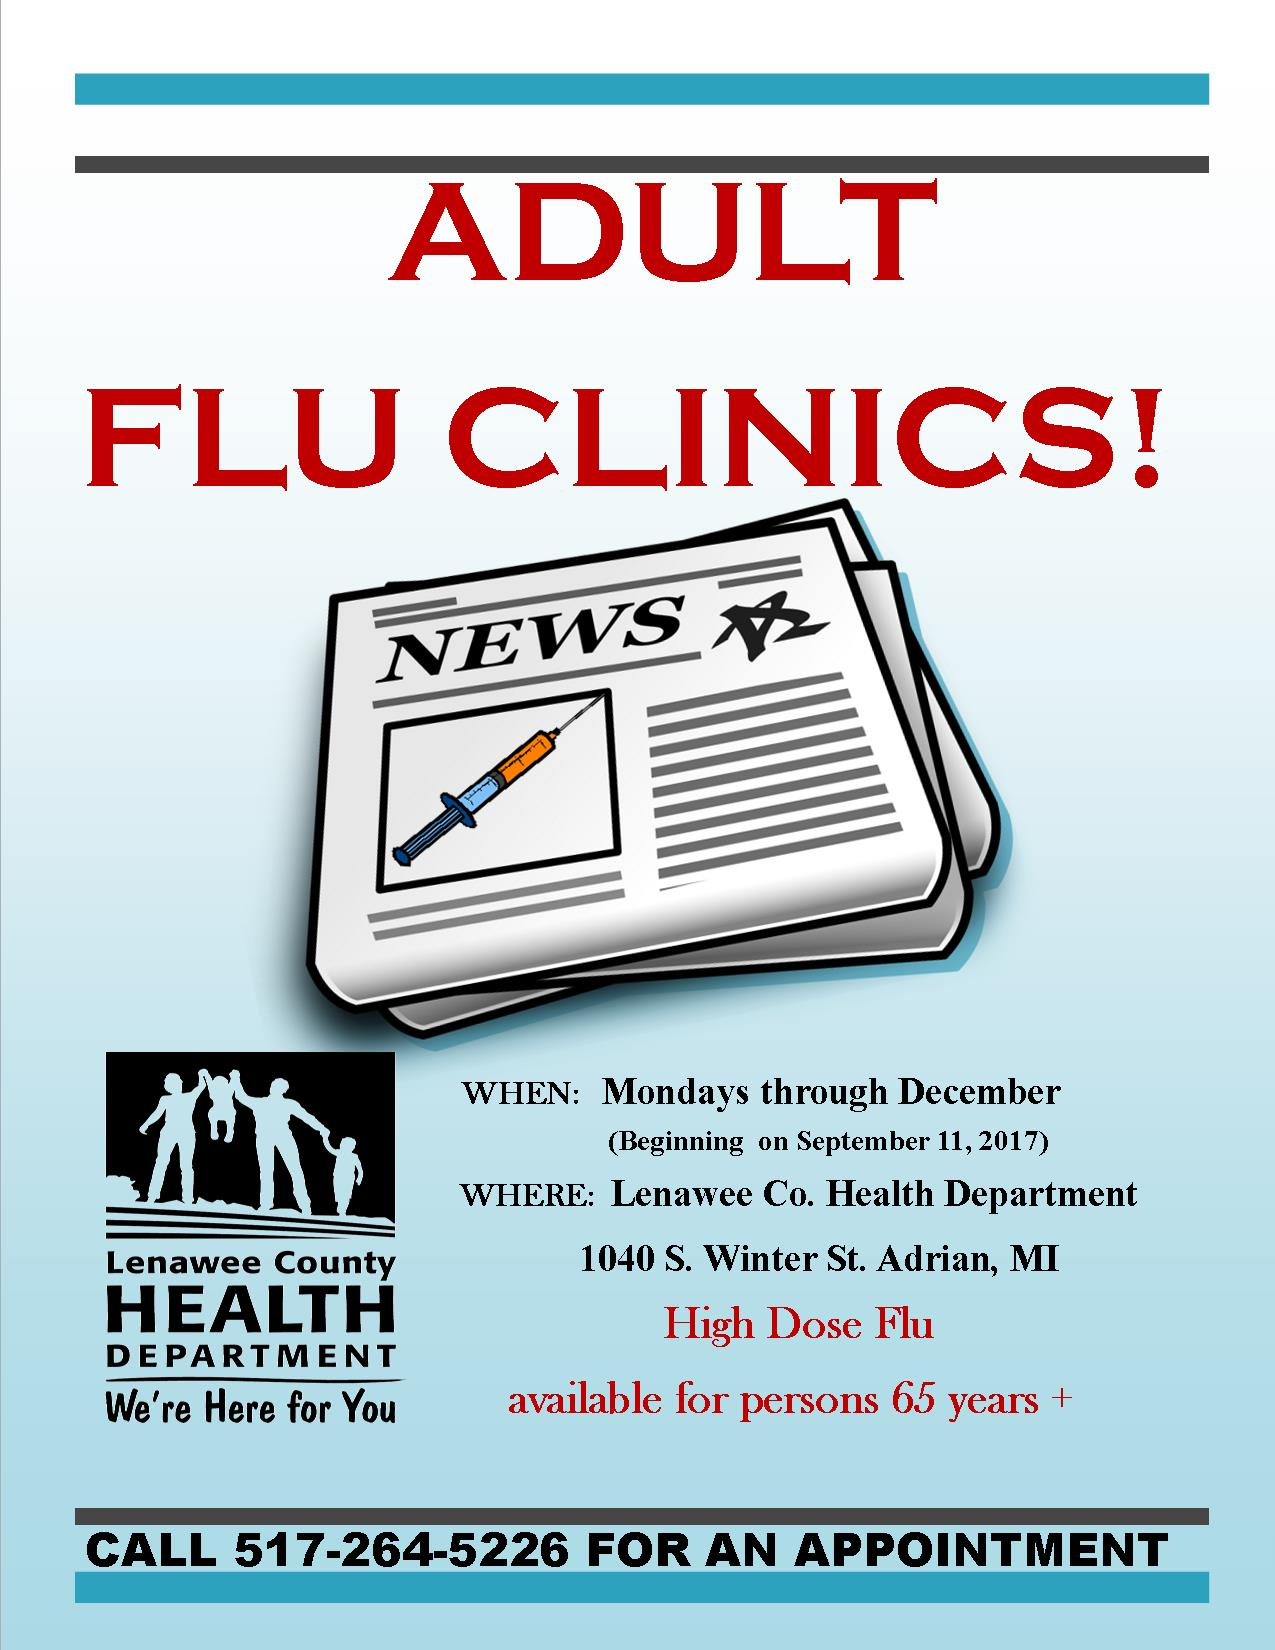 Adult Flu clinics 2017-18